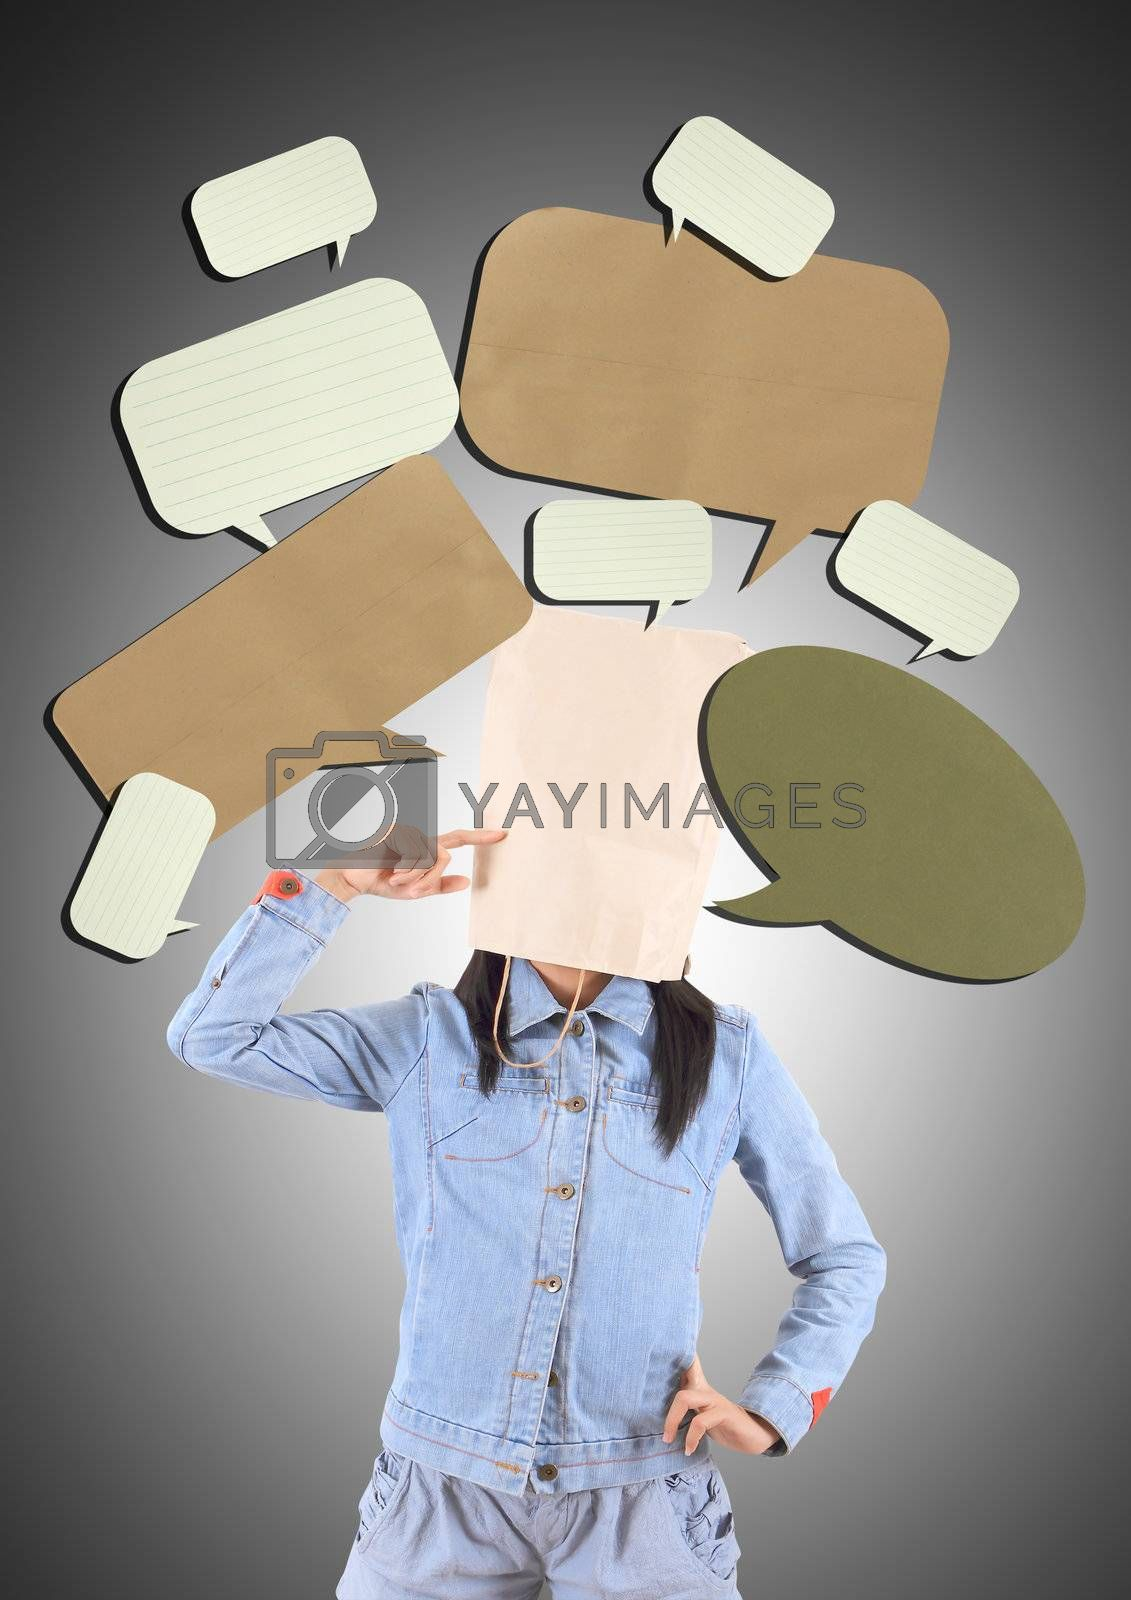 Image of young woman thinking of his plans